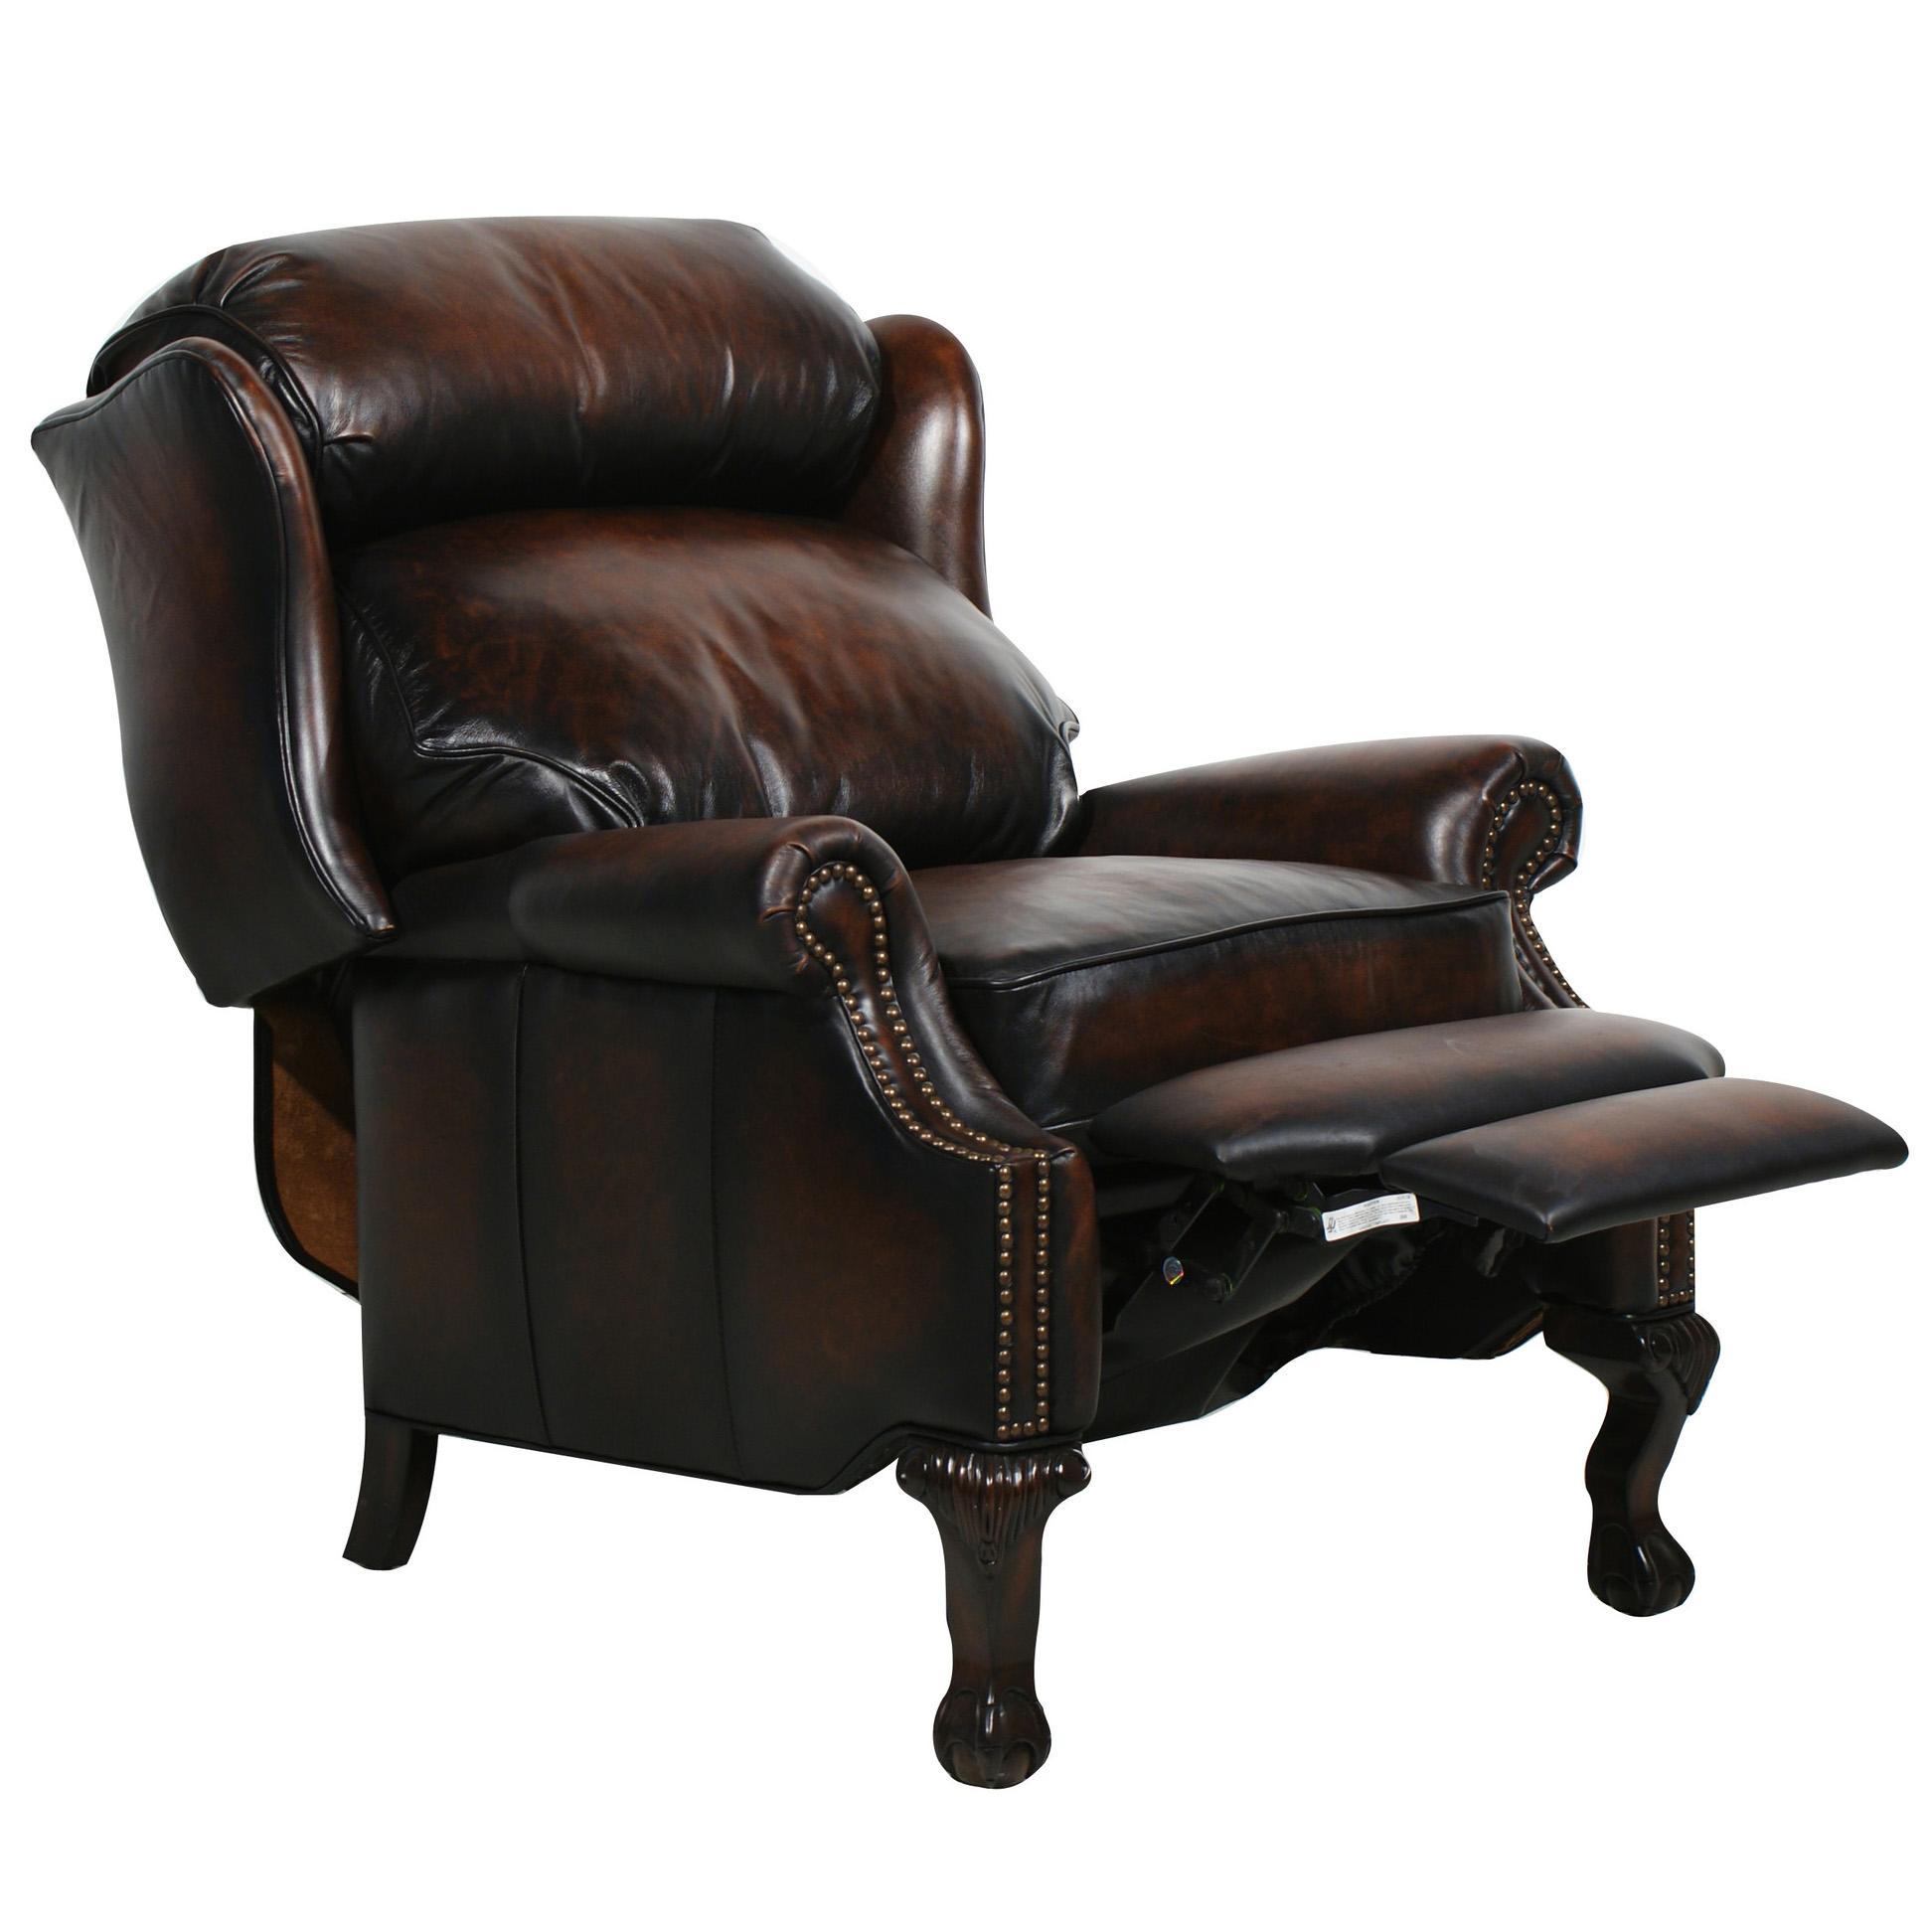 Leather Recliner Chairs Barcalounger Danbury Ii Recliner Chair Leather Recliner